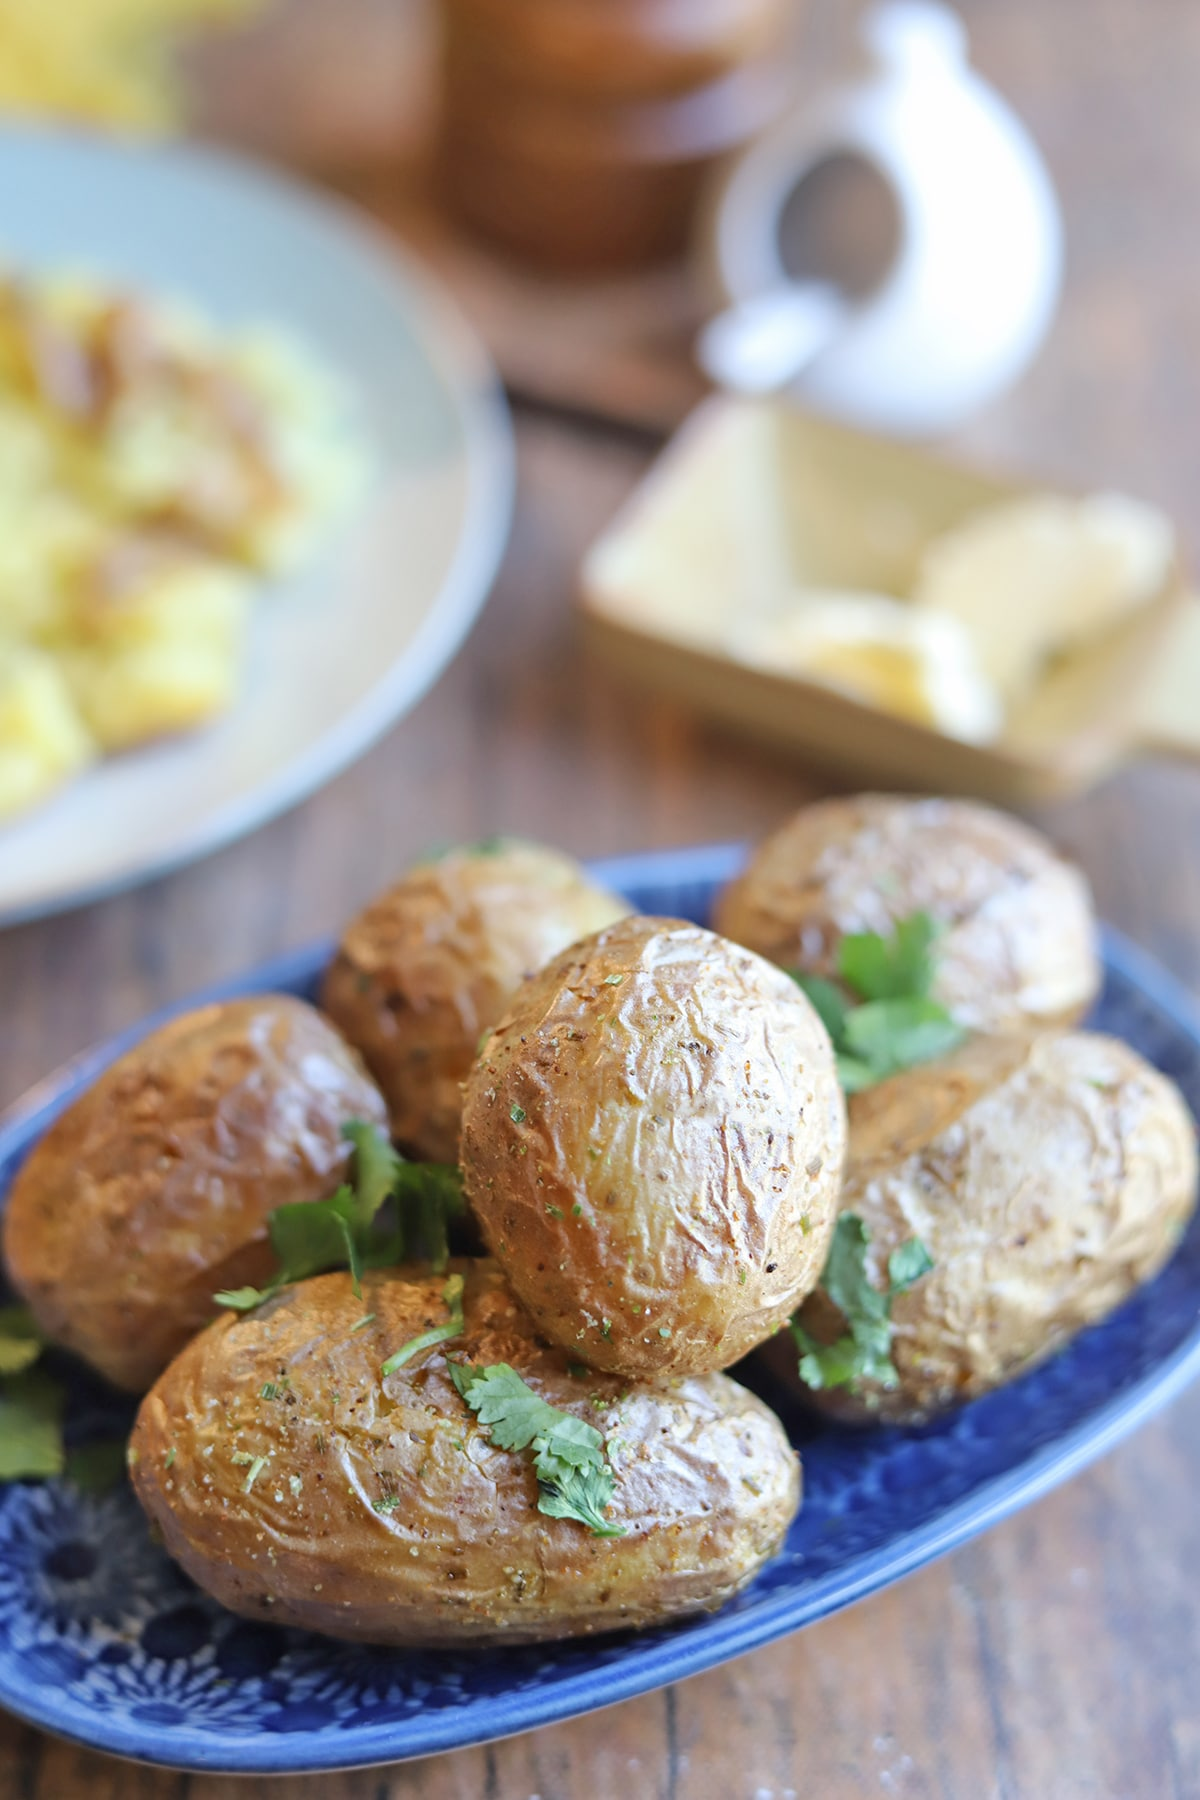 Air fried baby potatoes on table by non-dairy butter and salt.